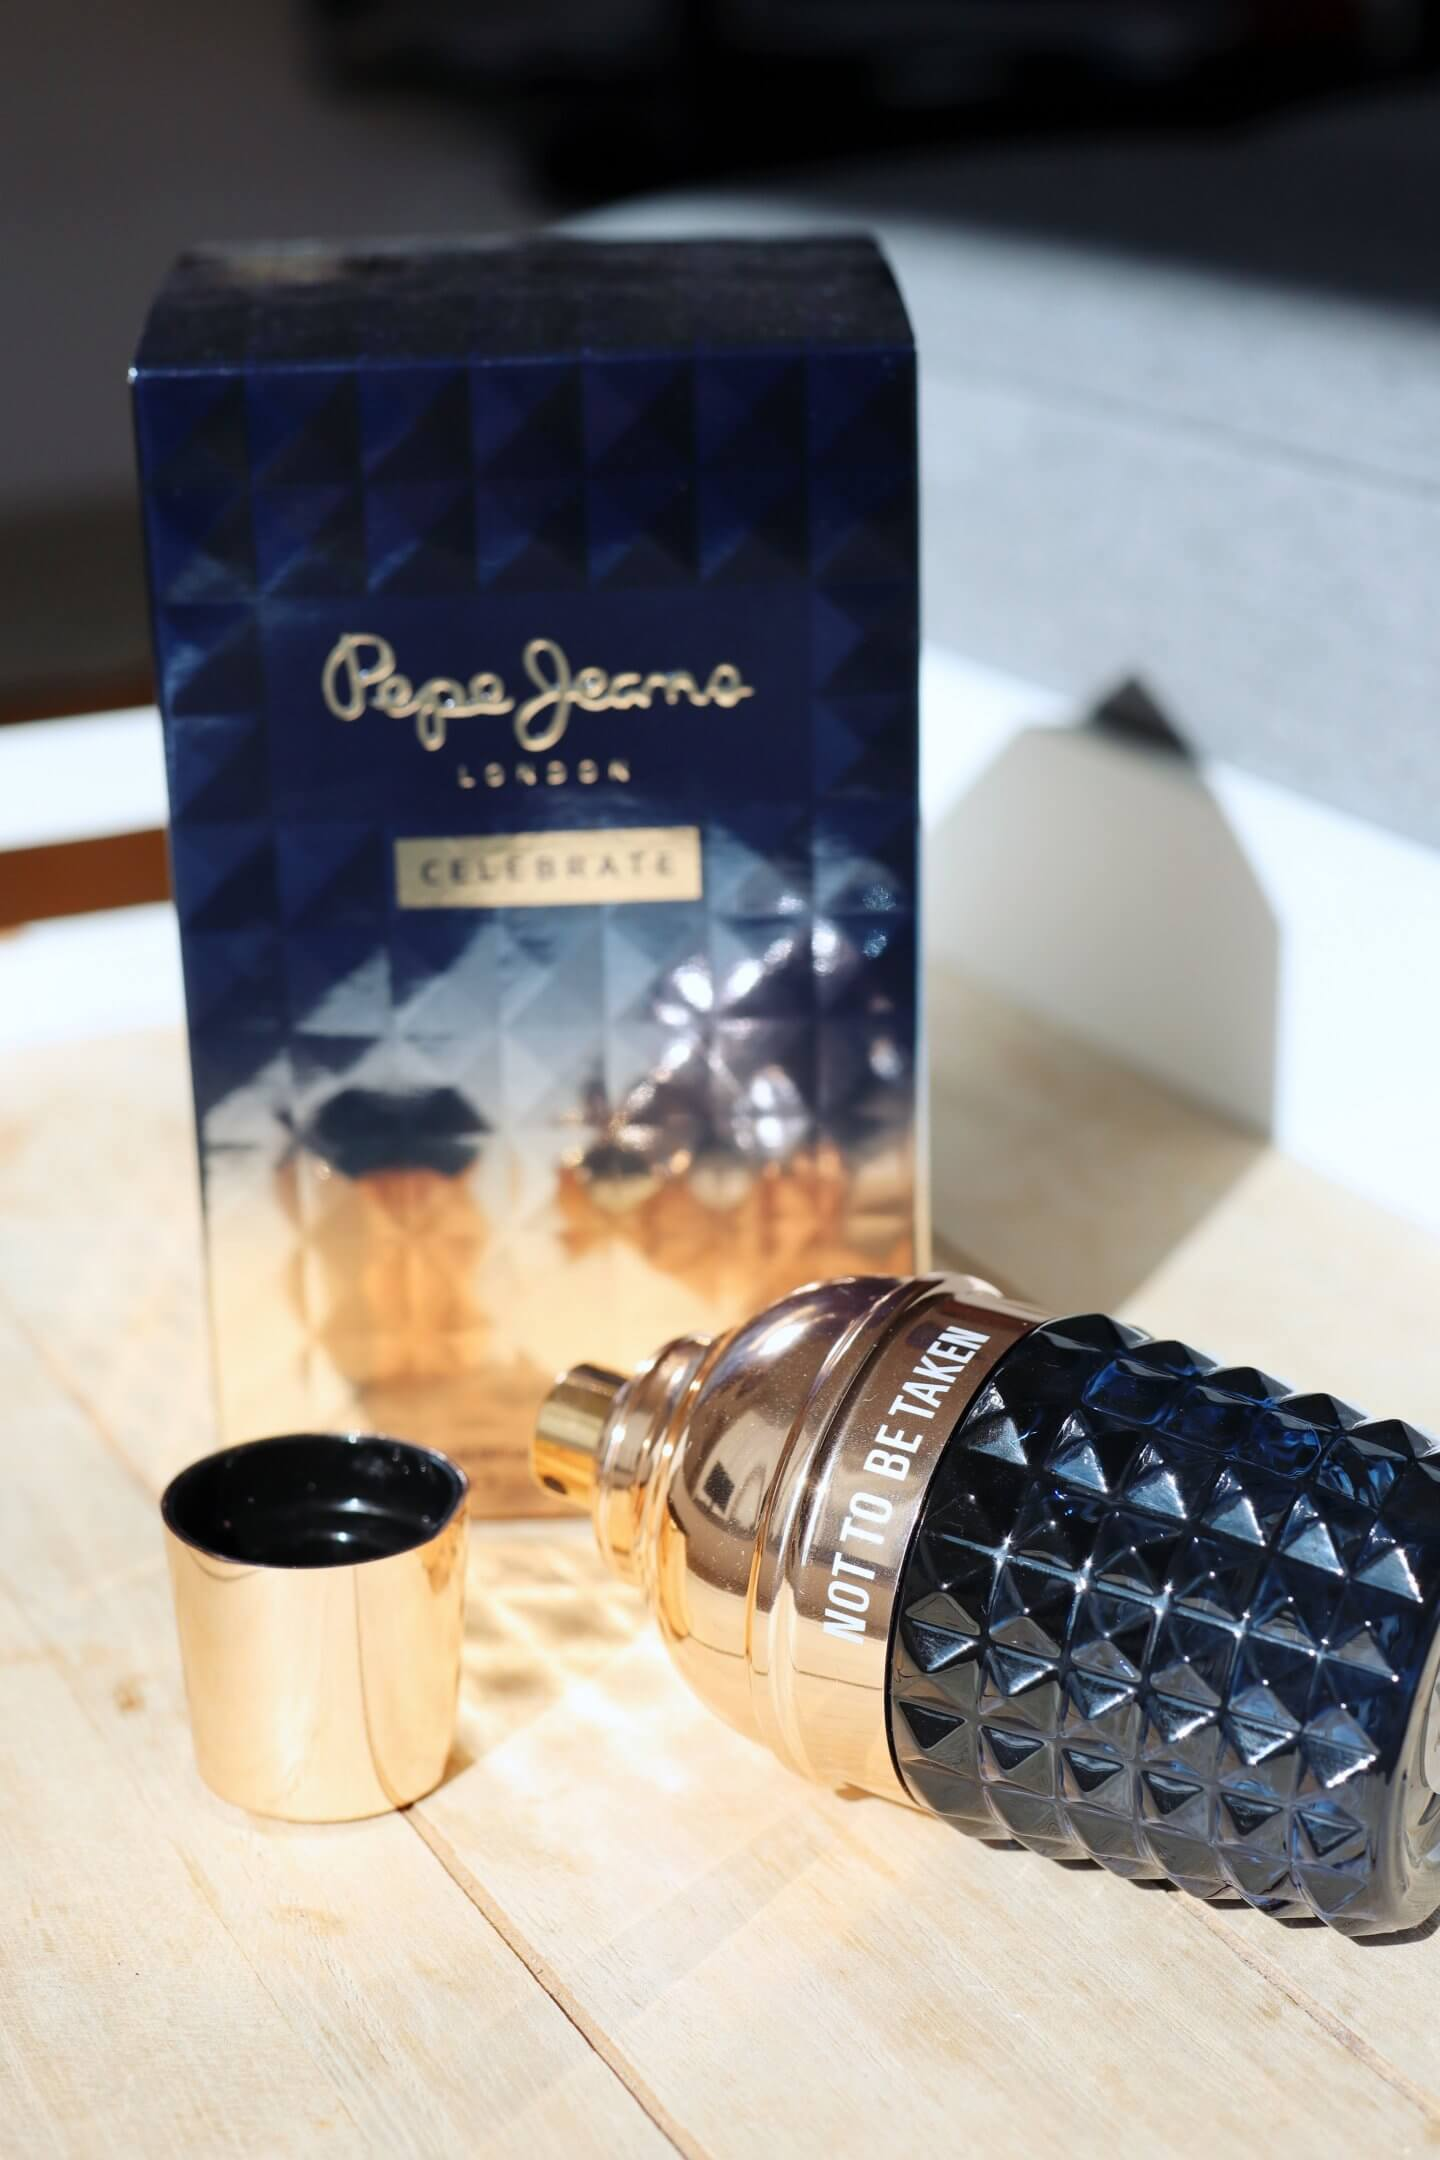 The new Pepe Jeans Perfume with both Pepe Jeans Celebrate for him and Pepe Jeans for her